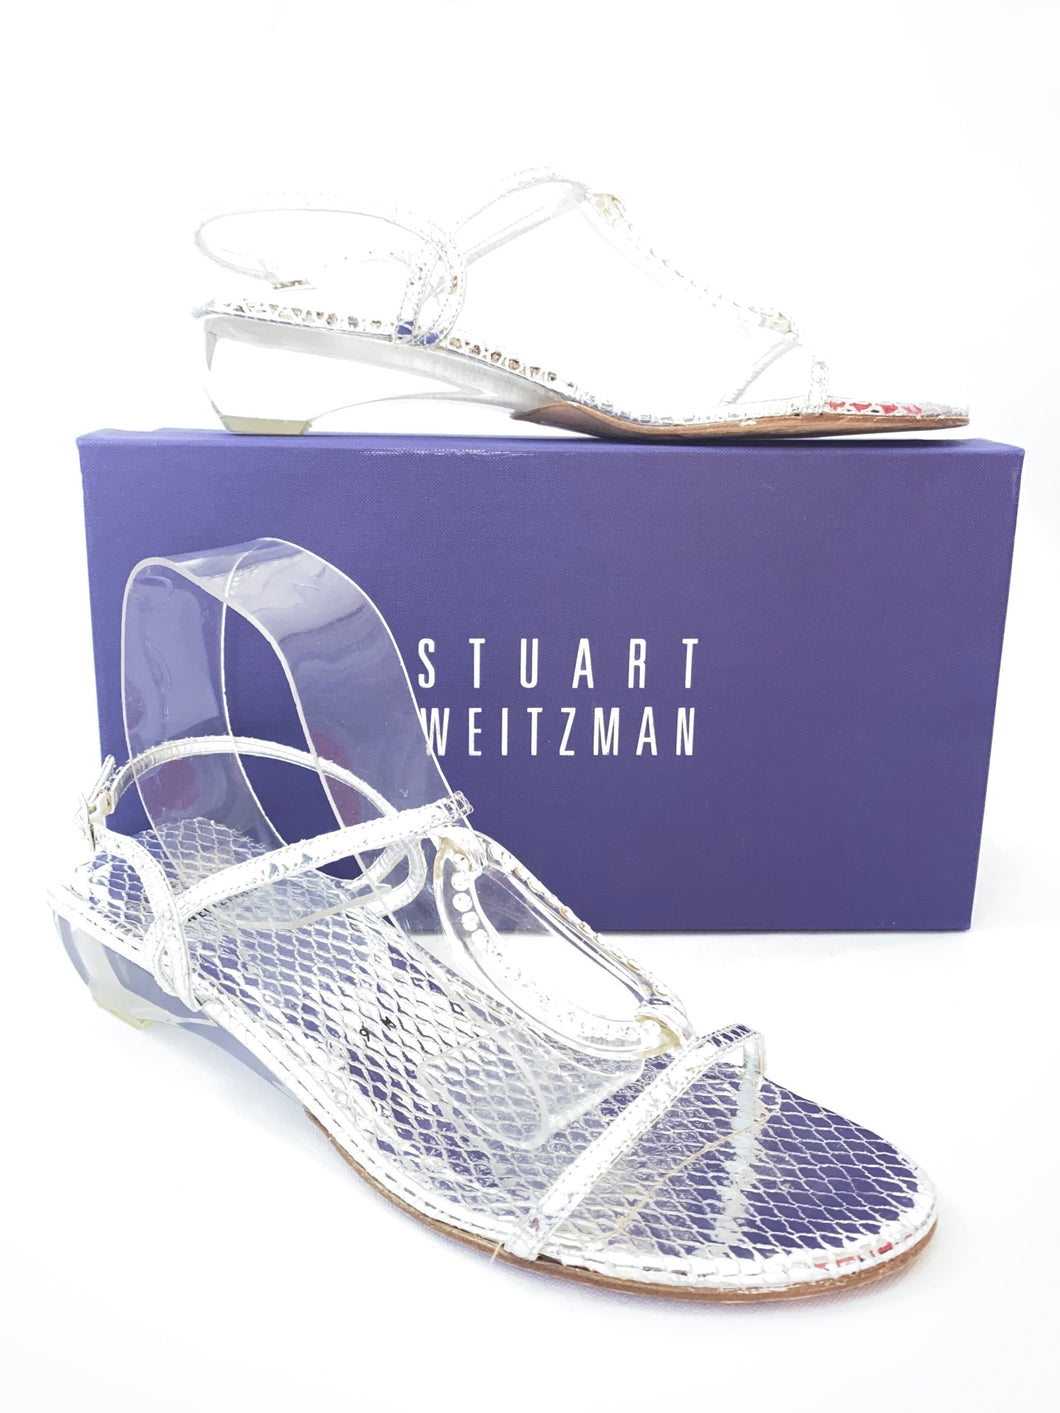 Stuart Weitzman silver and clear sandals size 9 - My Girlfriend's Wardrobe York Pa